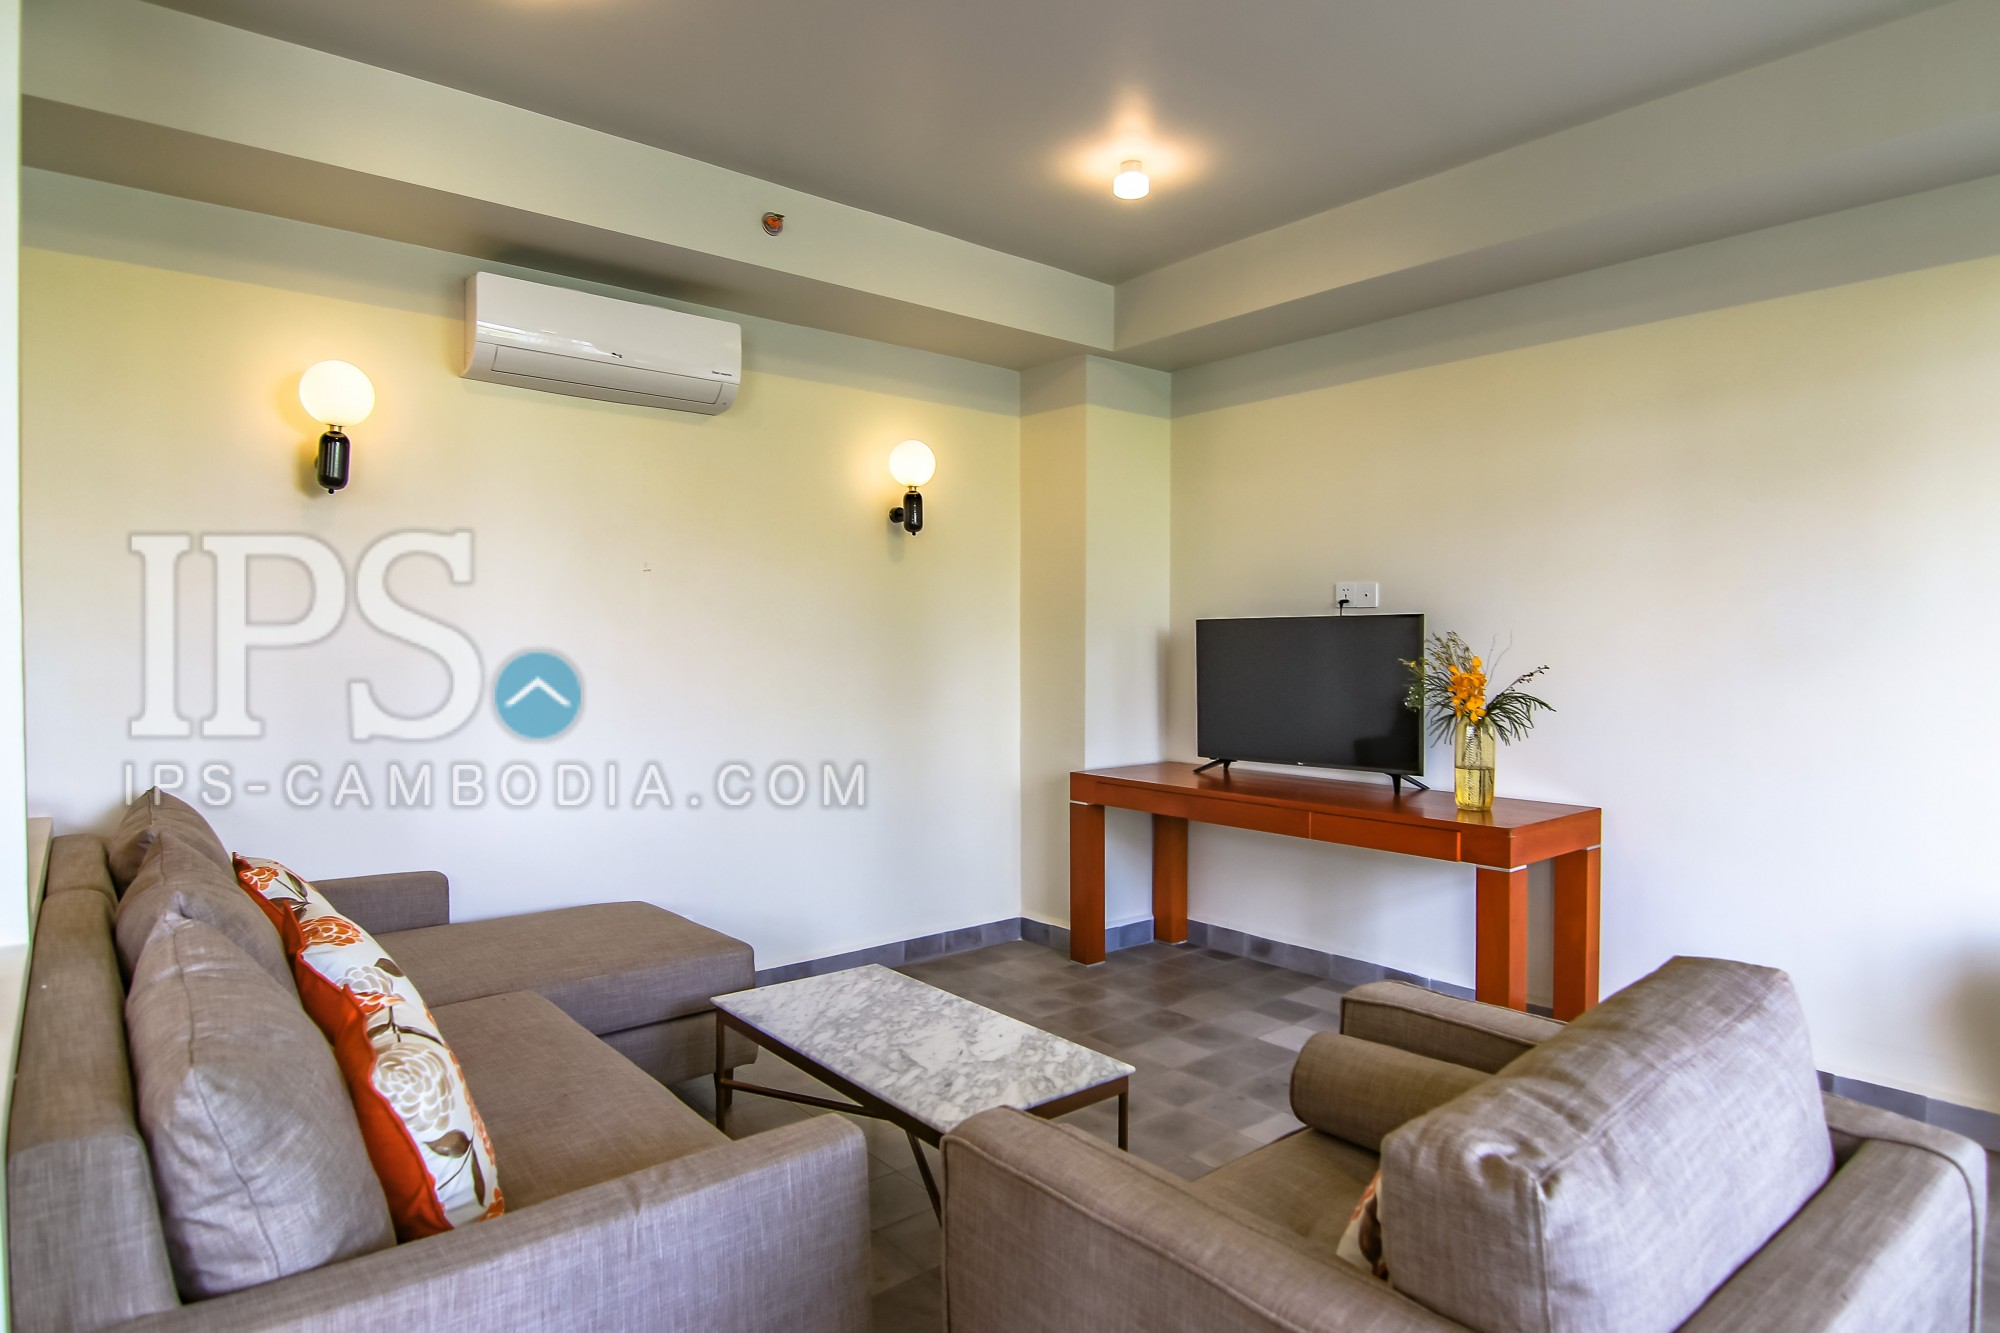 3 Bedroom Serviced Apartment for Rent -  Wat Phnom